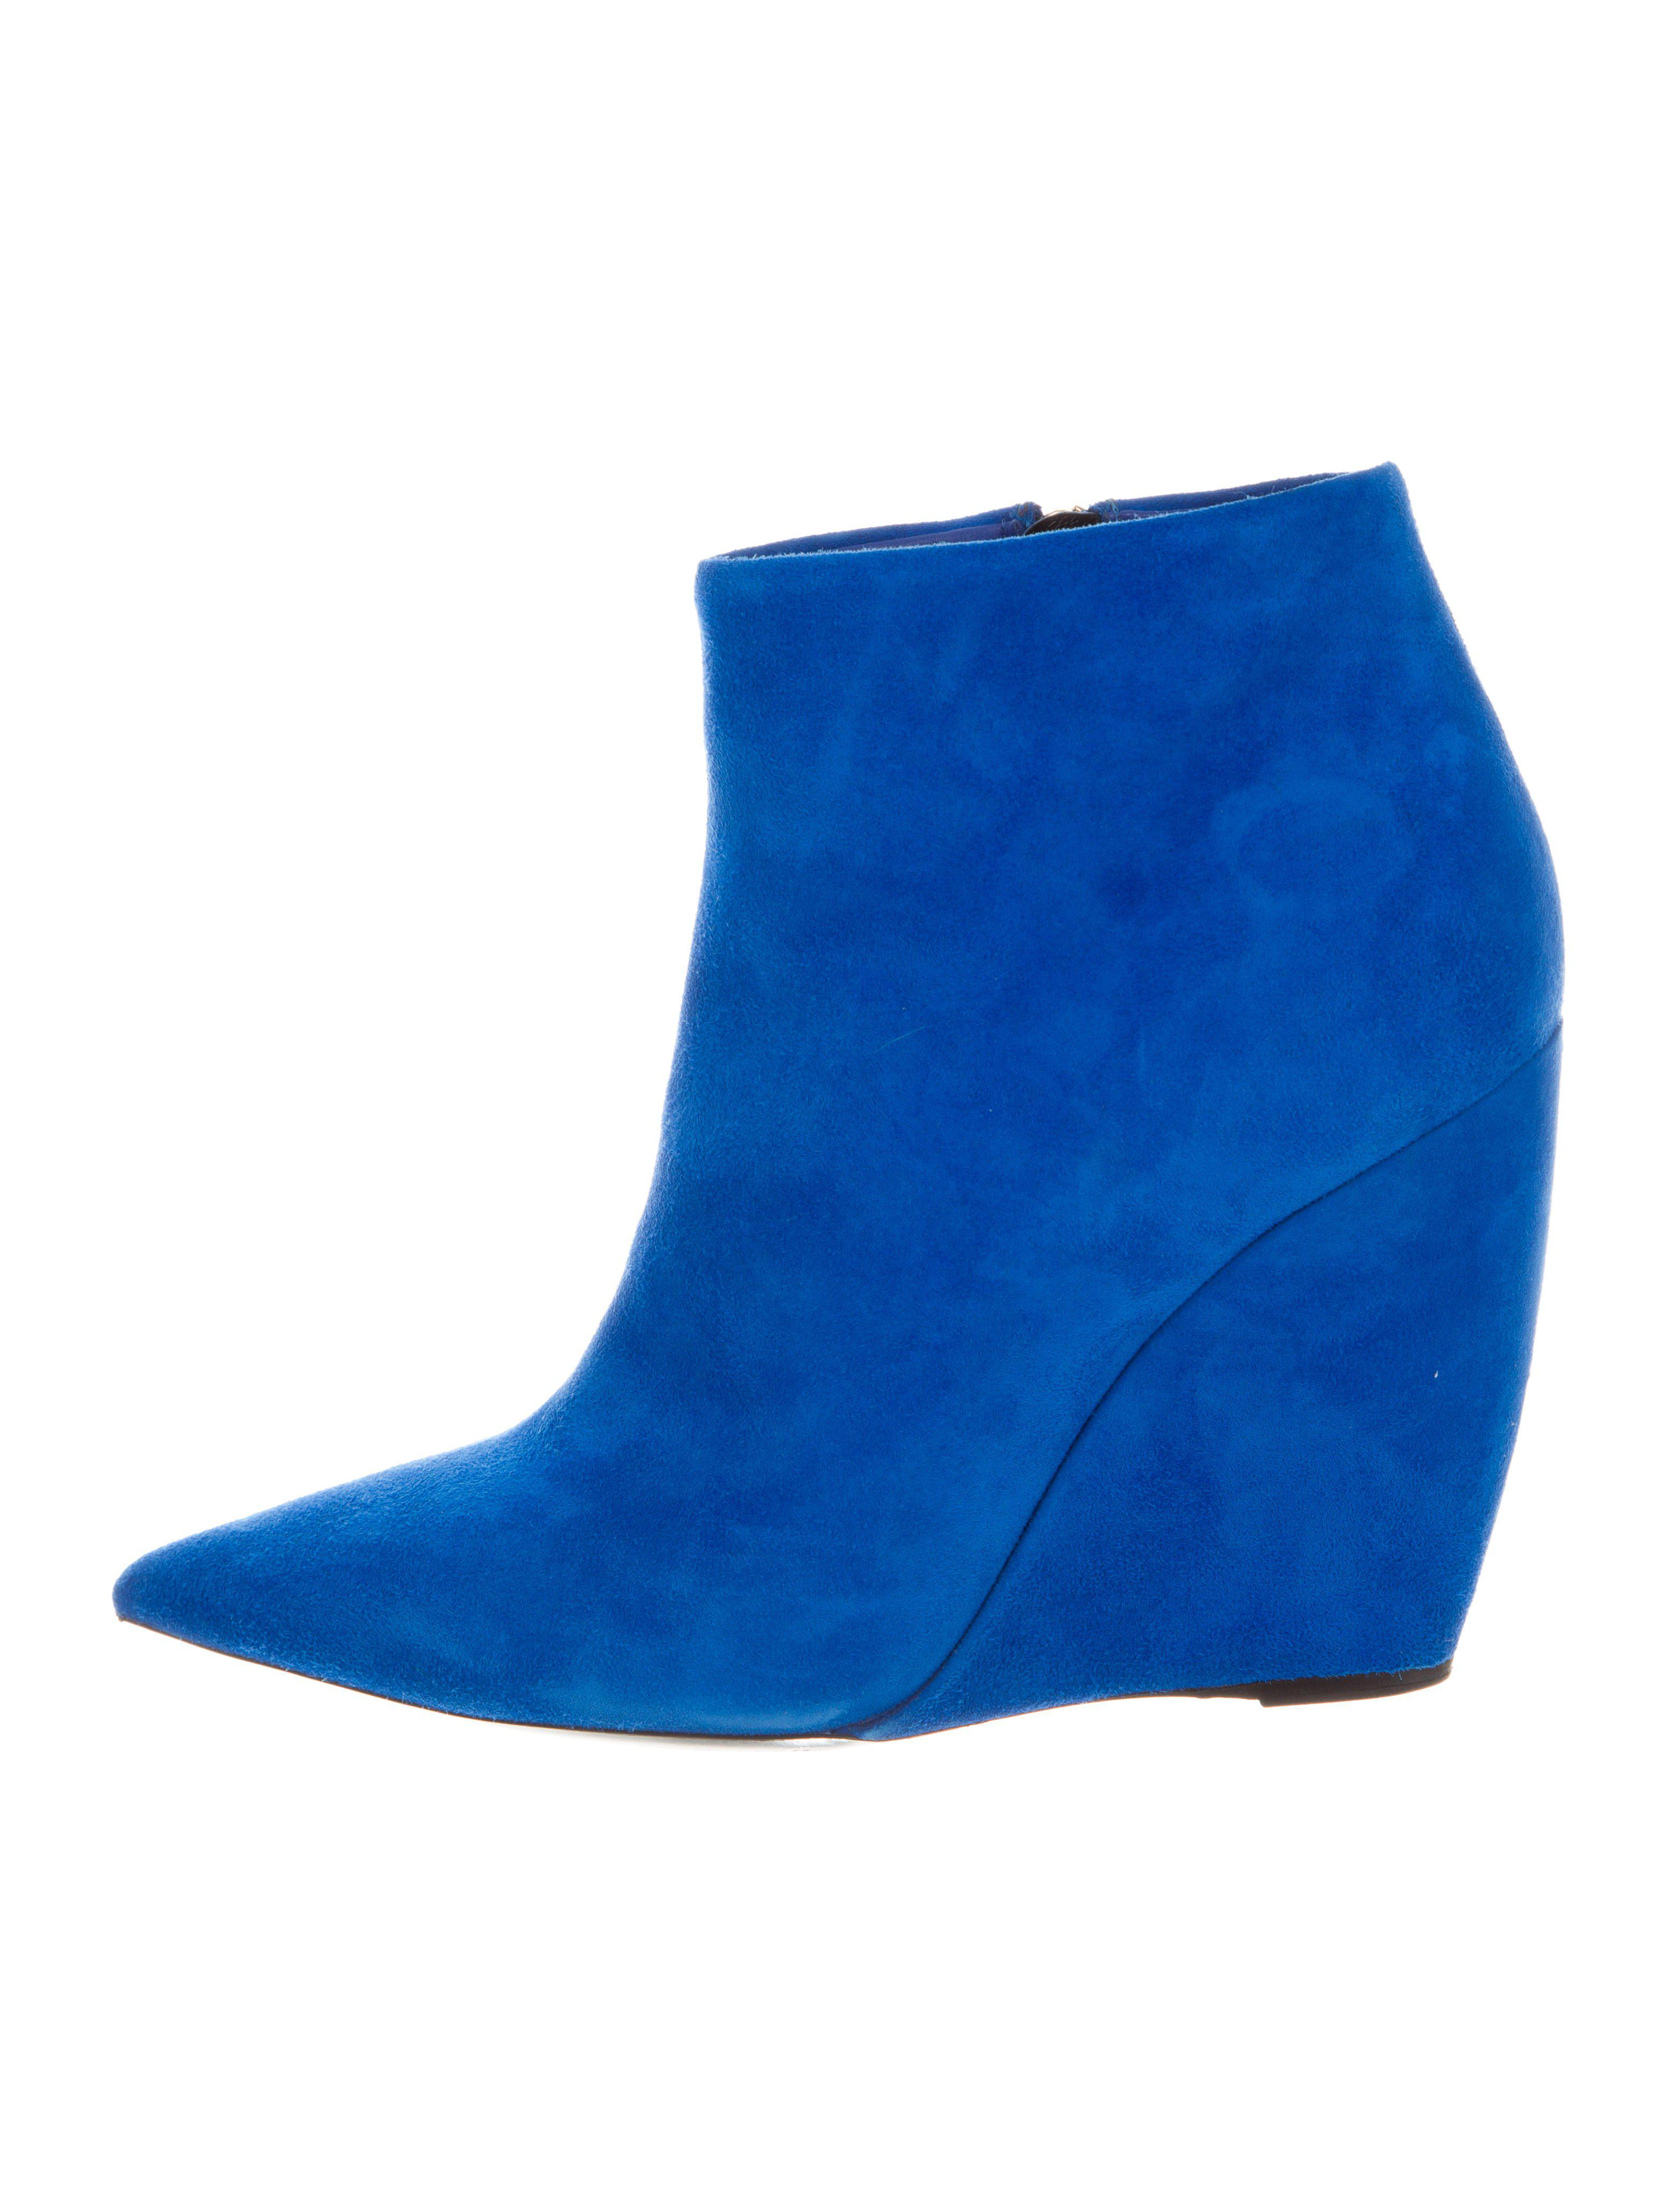 Nicholas Kirkwood Suede Lizy 105 Booties cheap real finishline NDZOex2XC